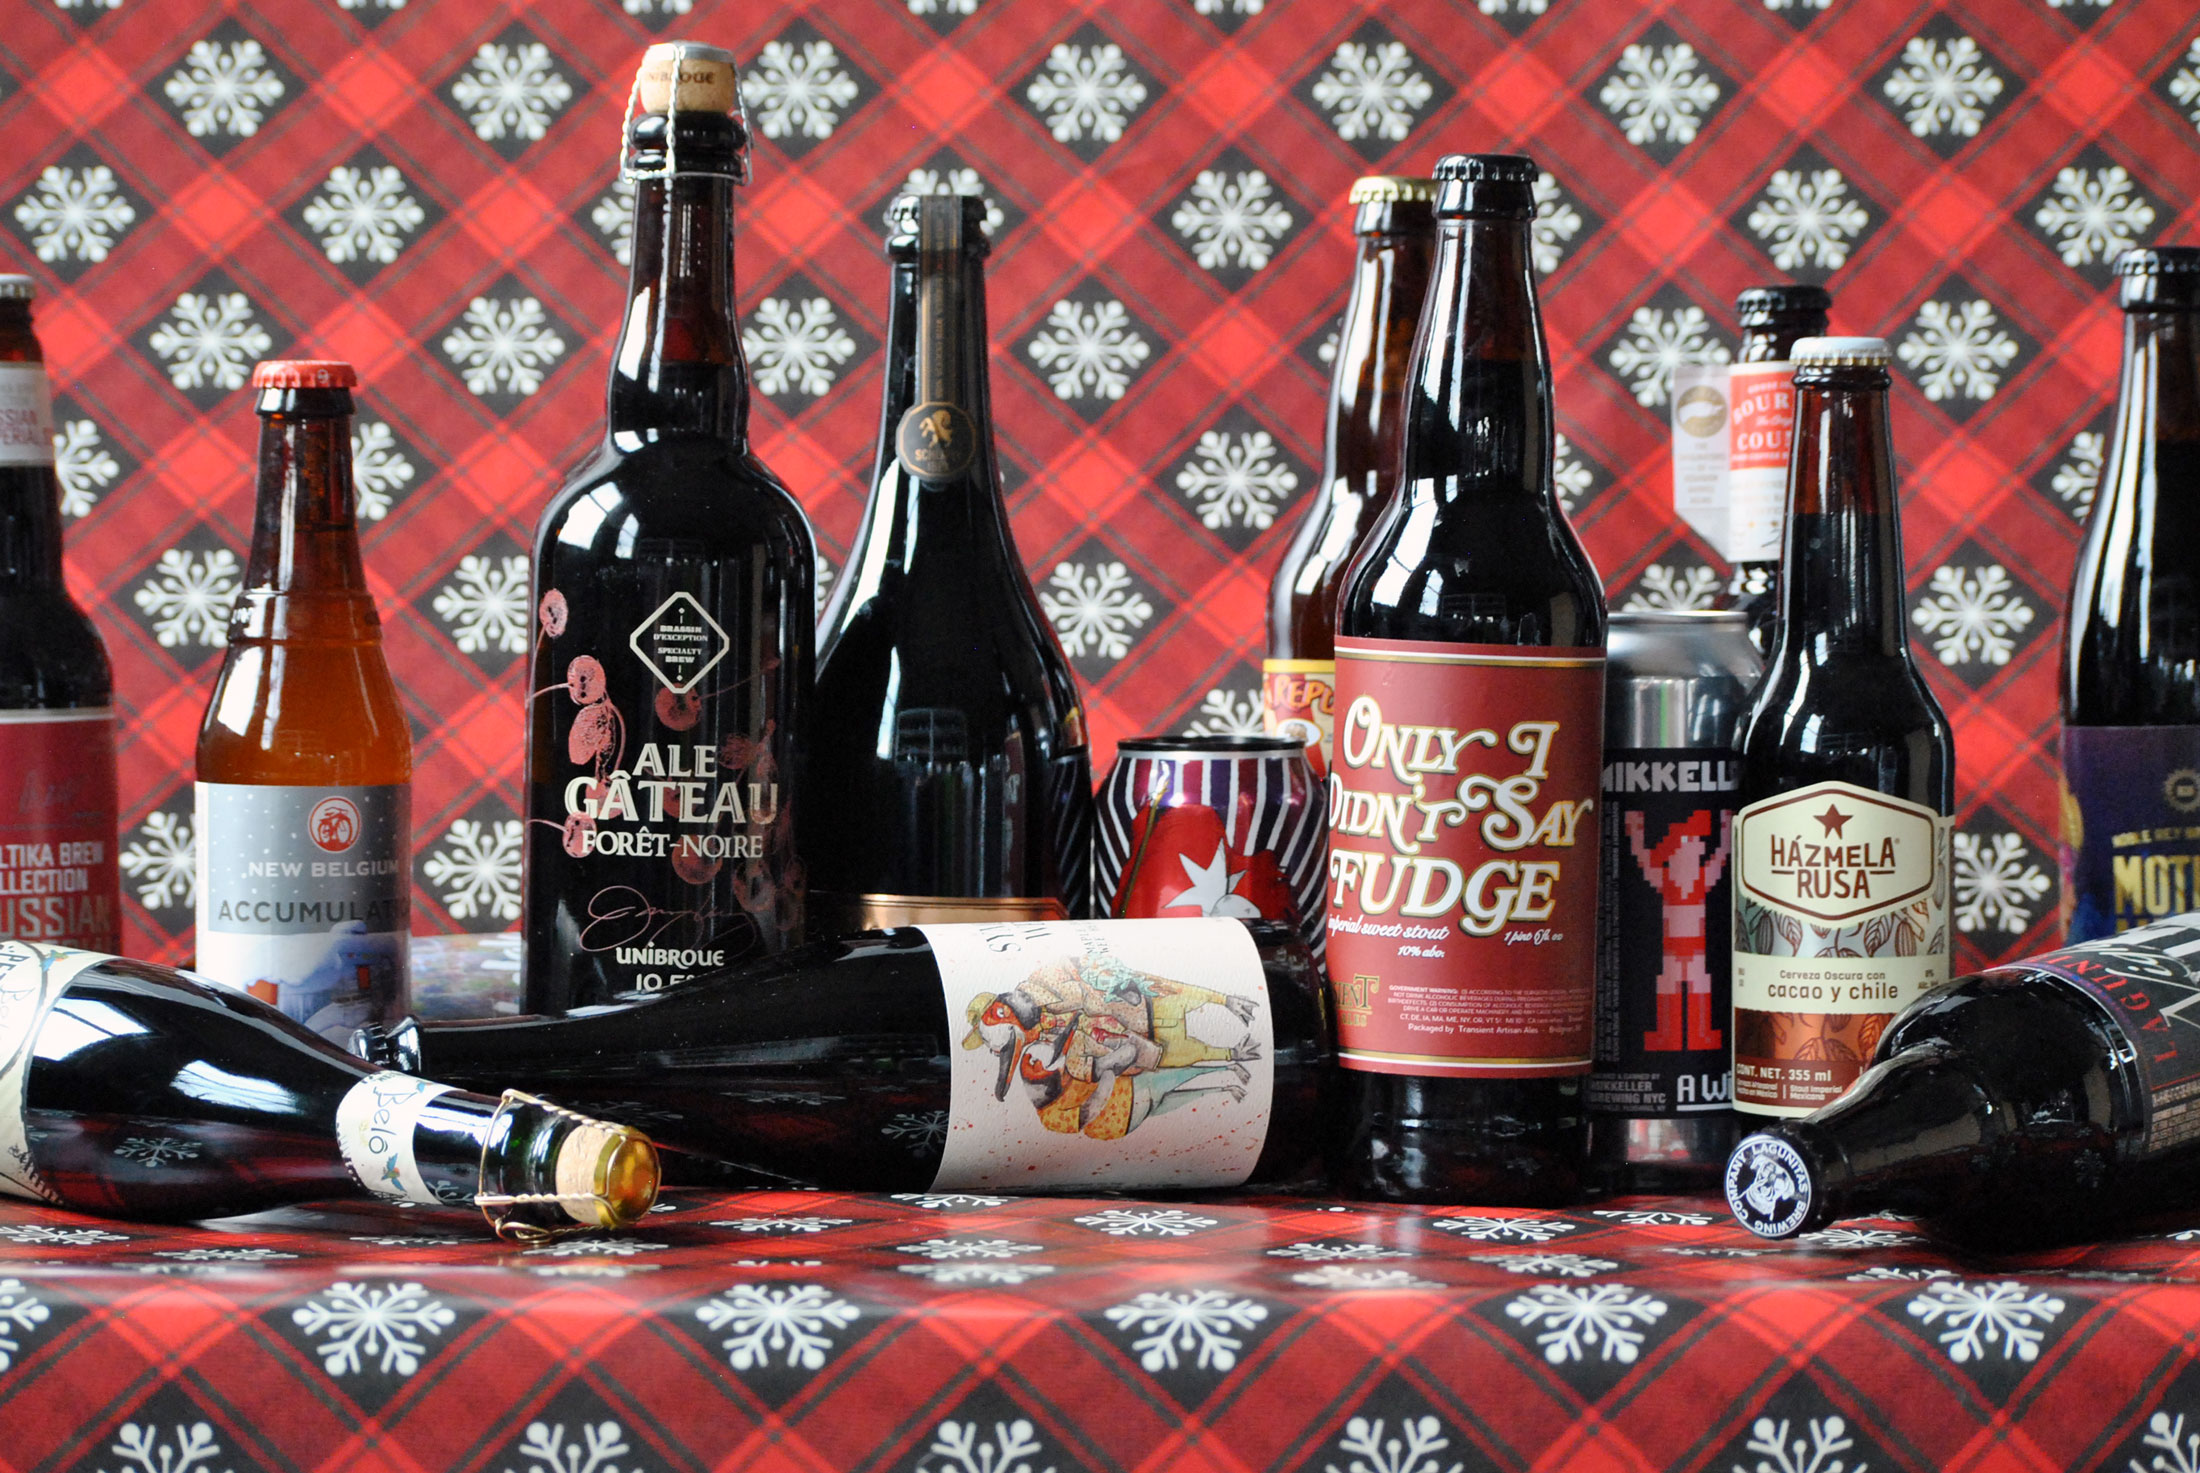 The Hop Reviews Vol. 31: A December Beer Review